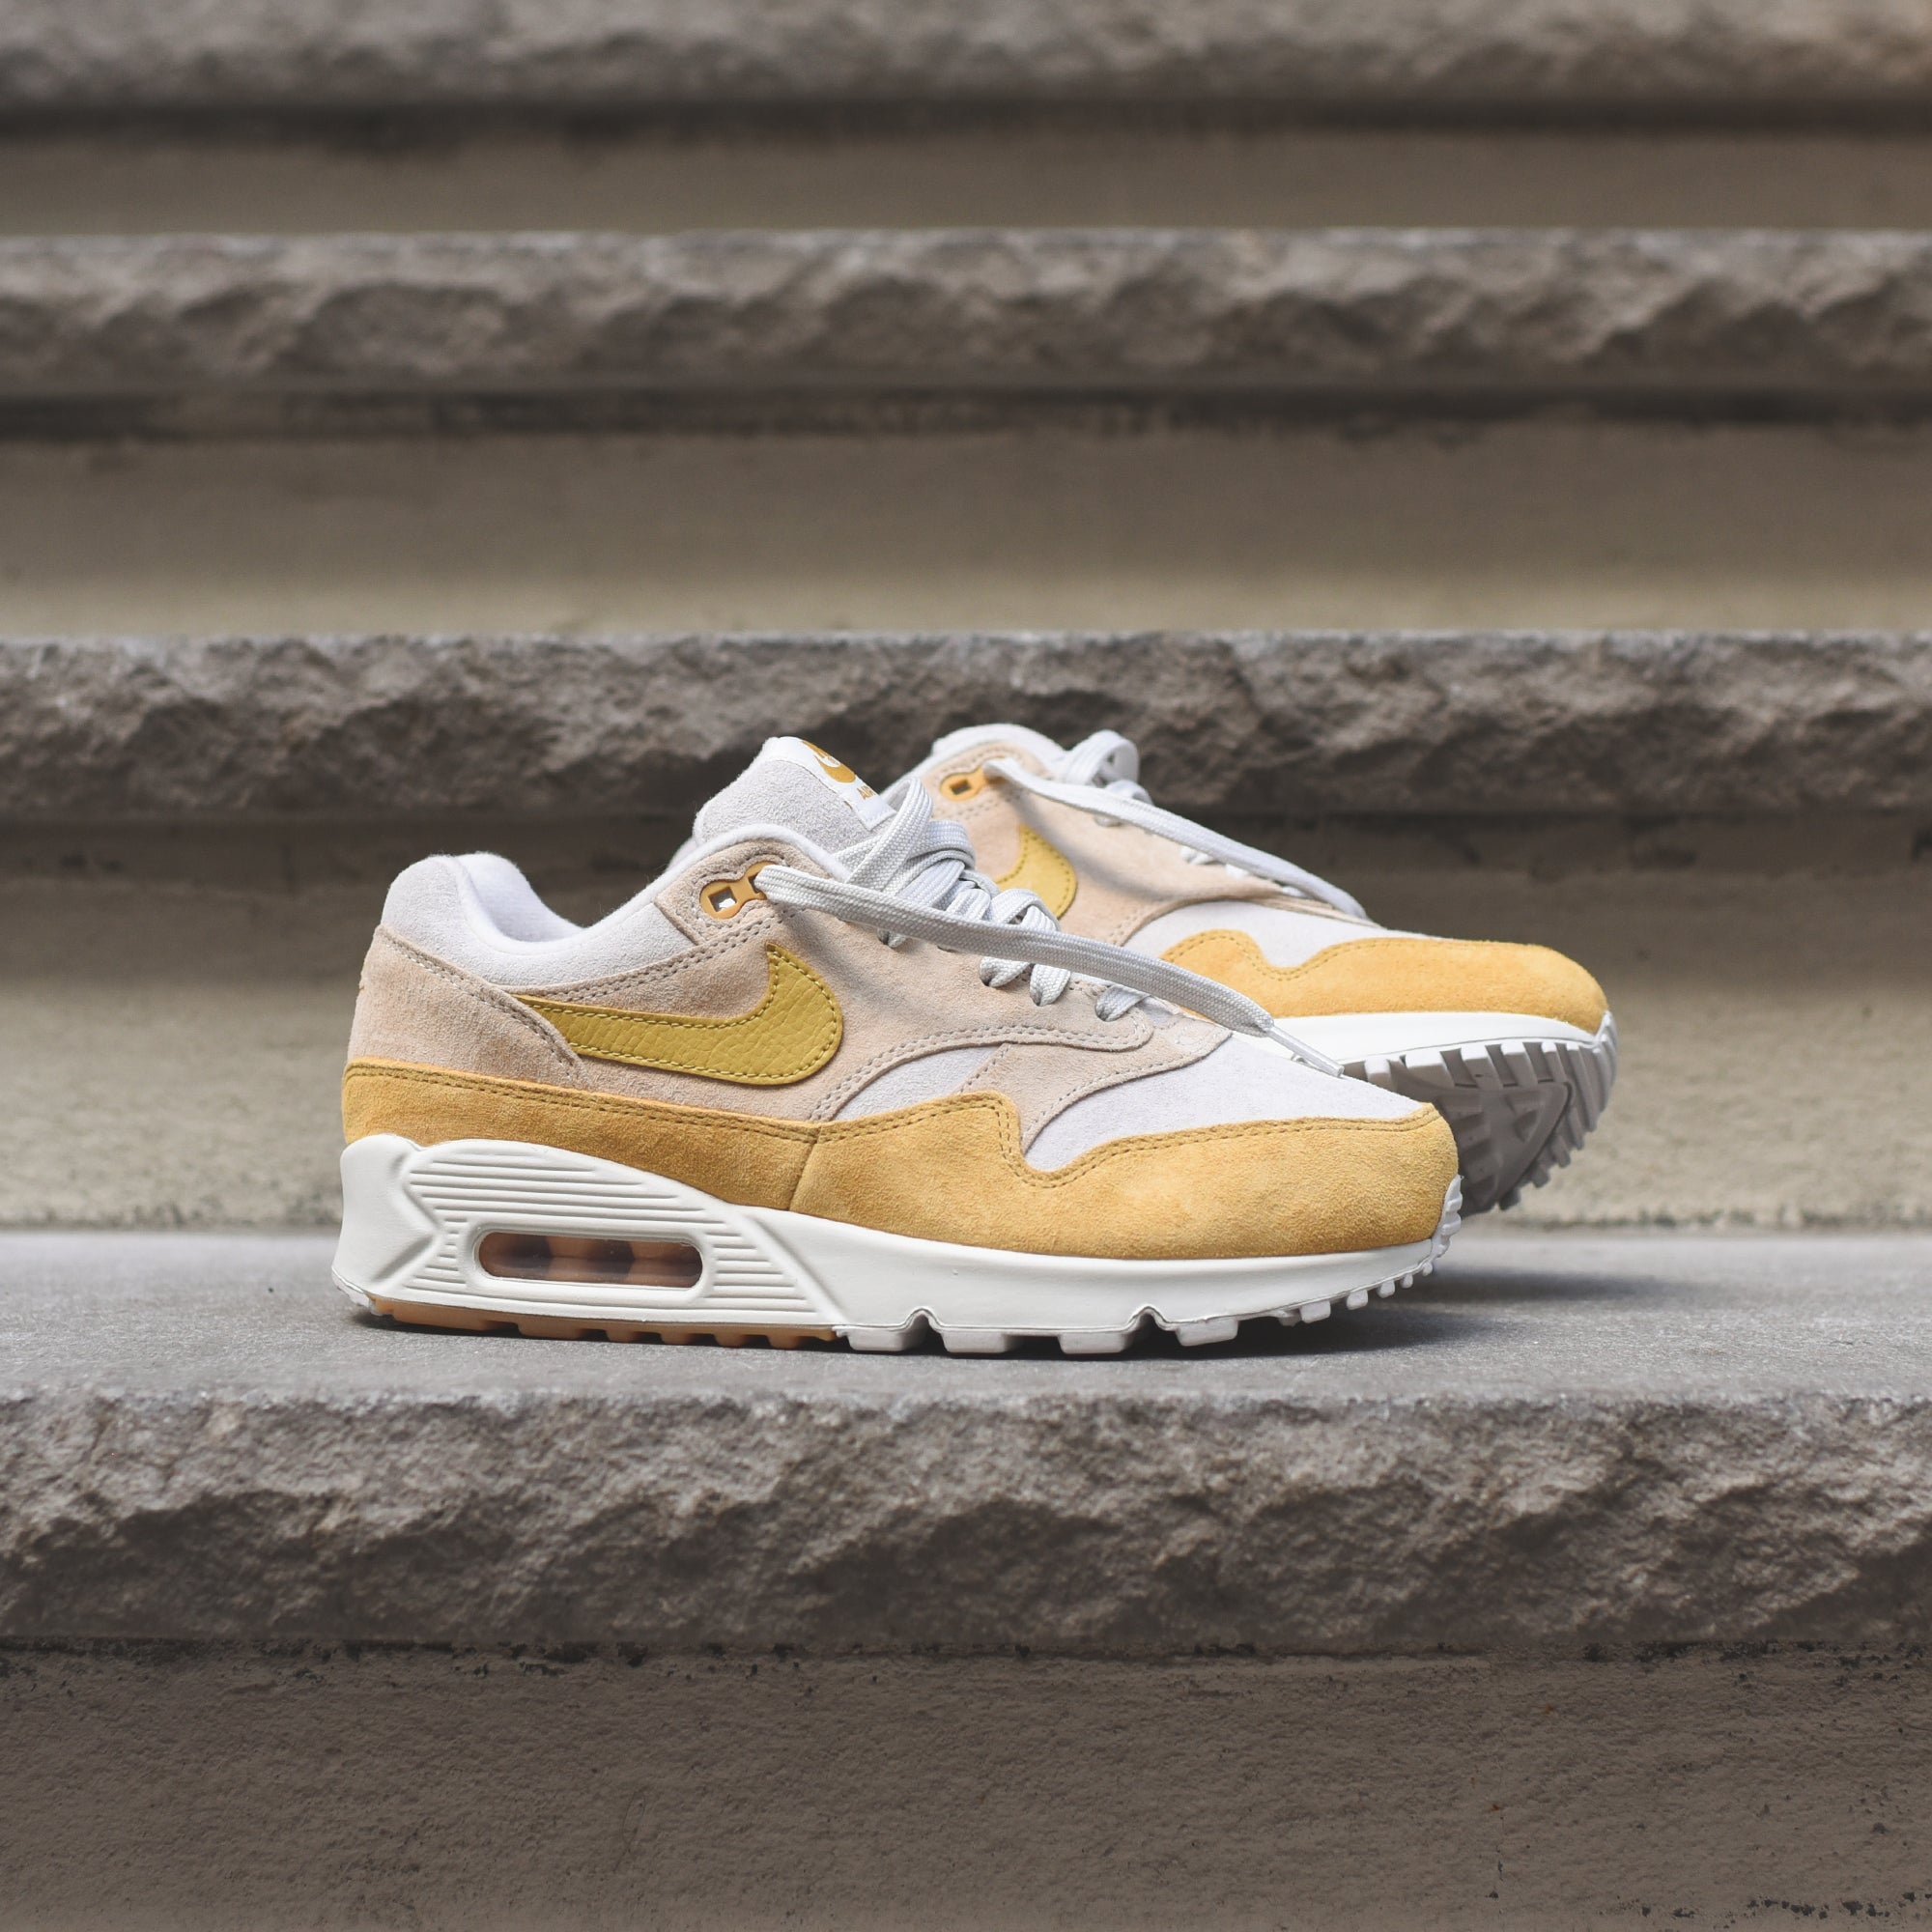 Nike Air Max 90 AQ1273 800 Guave IceWheat Gold Summit White